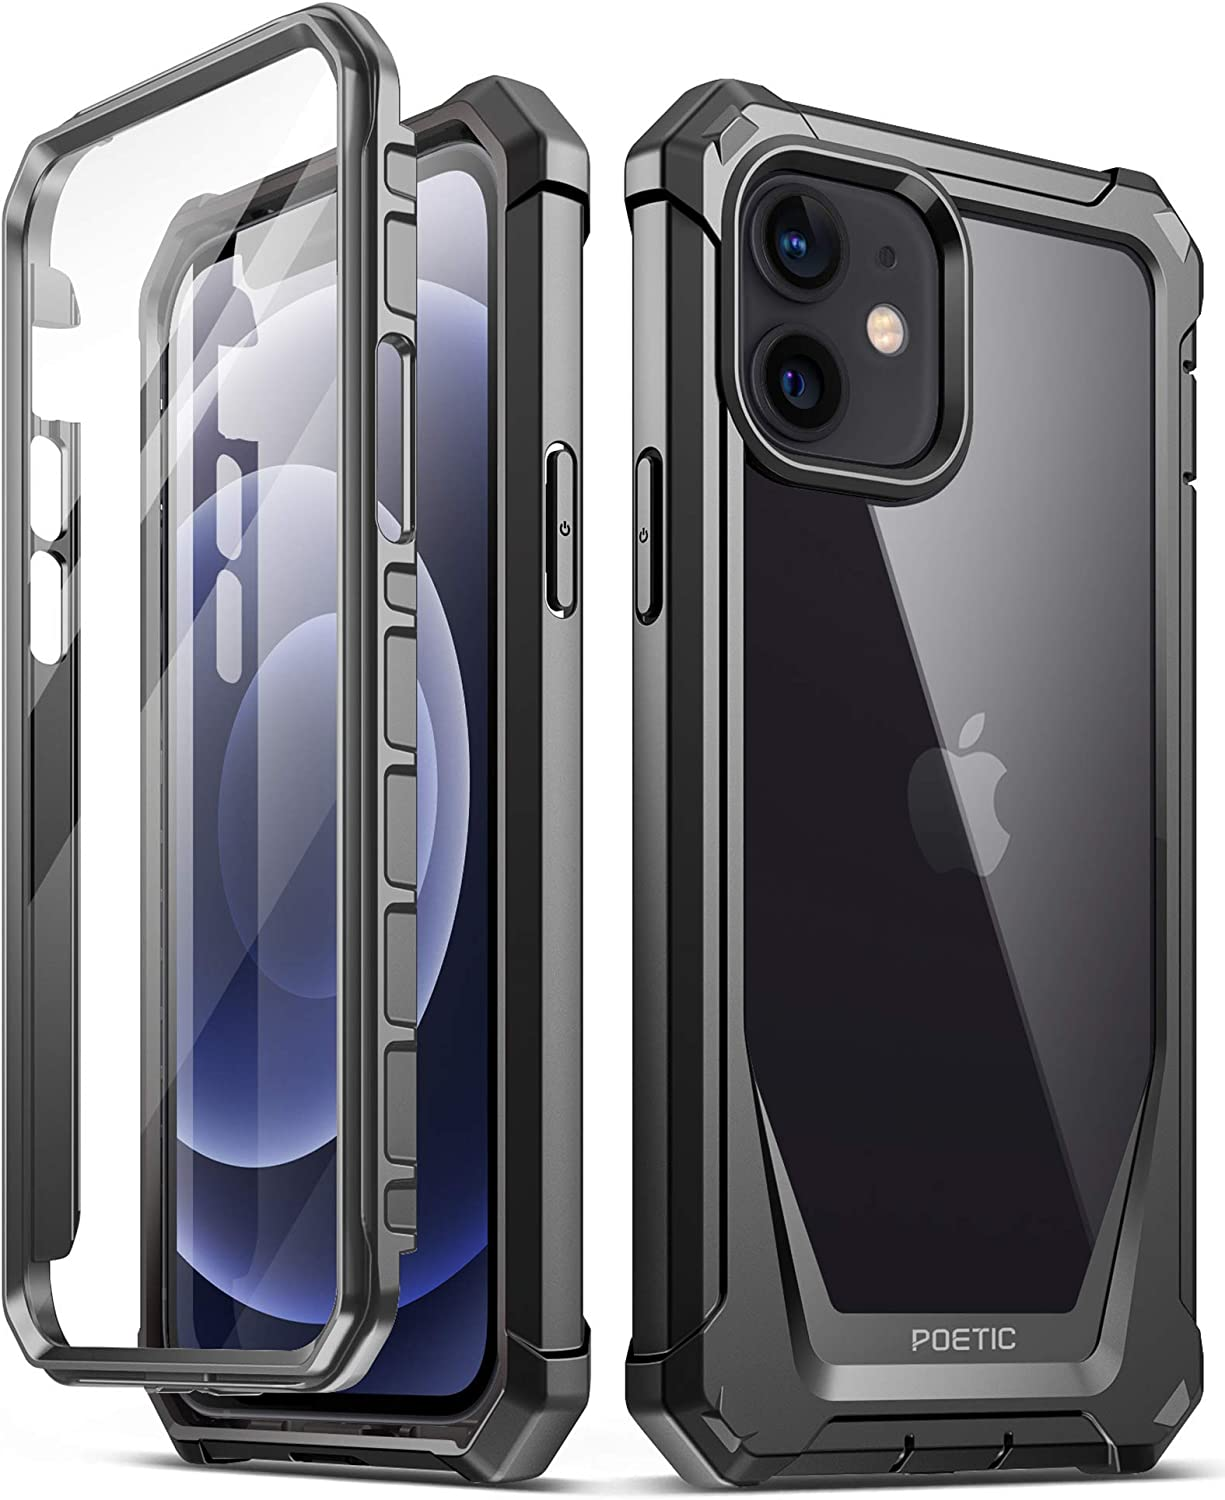 Poetic Guardian Series for iPhone 12 Case/iPhone 12 Pro 6.1 inch Case, Full-Body Hybrid Reinforced Shockproof Protective Rugged Clear Bumper Cover Case with Built-in-Screen Protector, Black/Clear